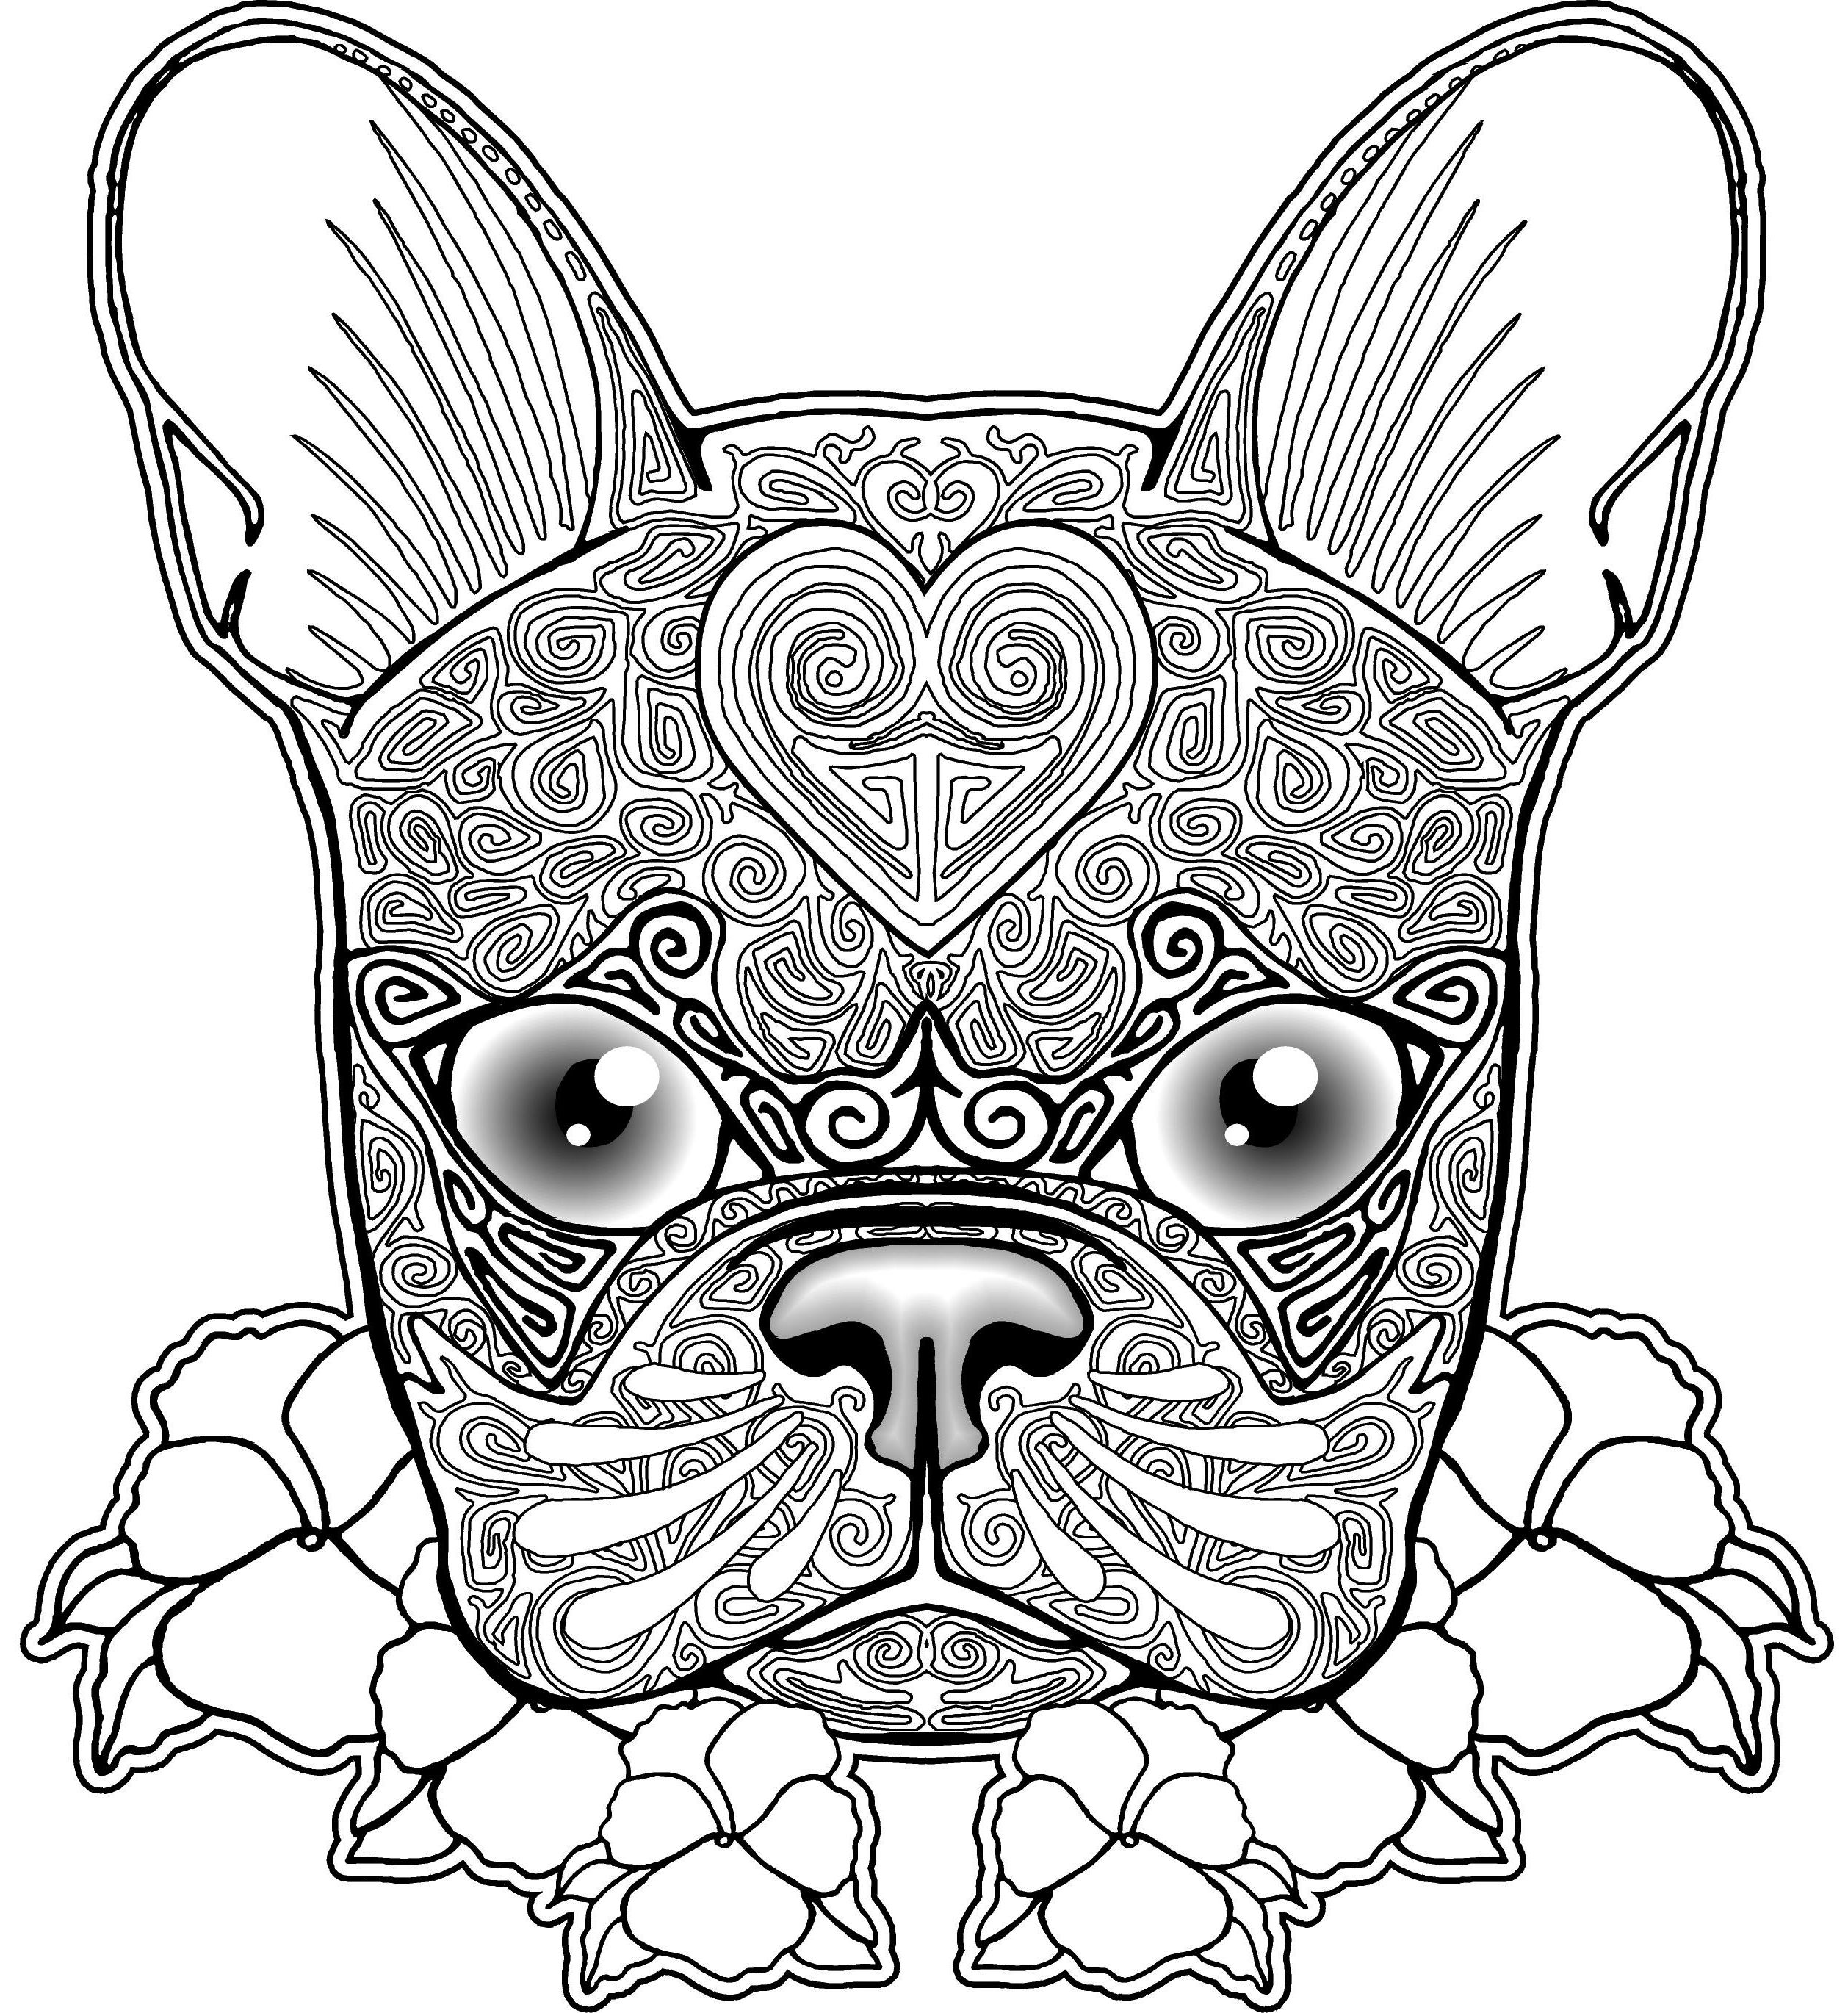 print a dog pug dog coloring pages coloring home a print dog